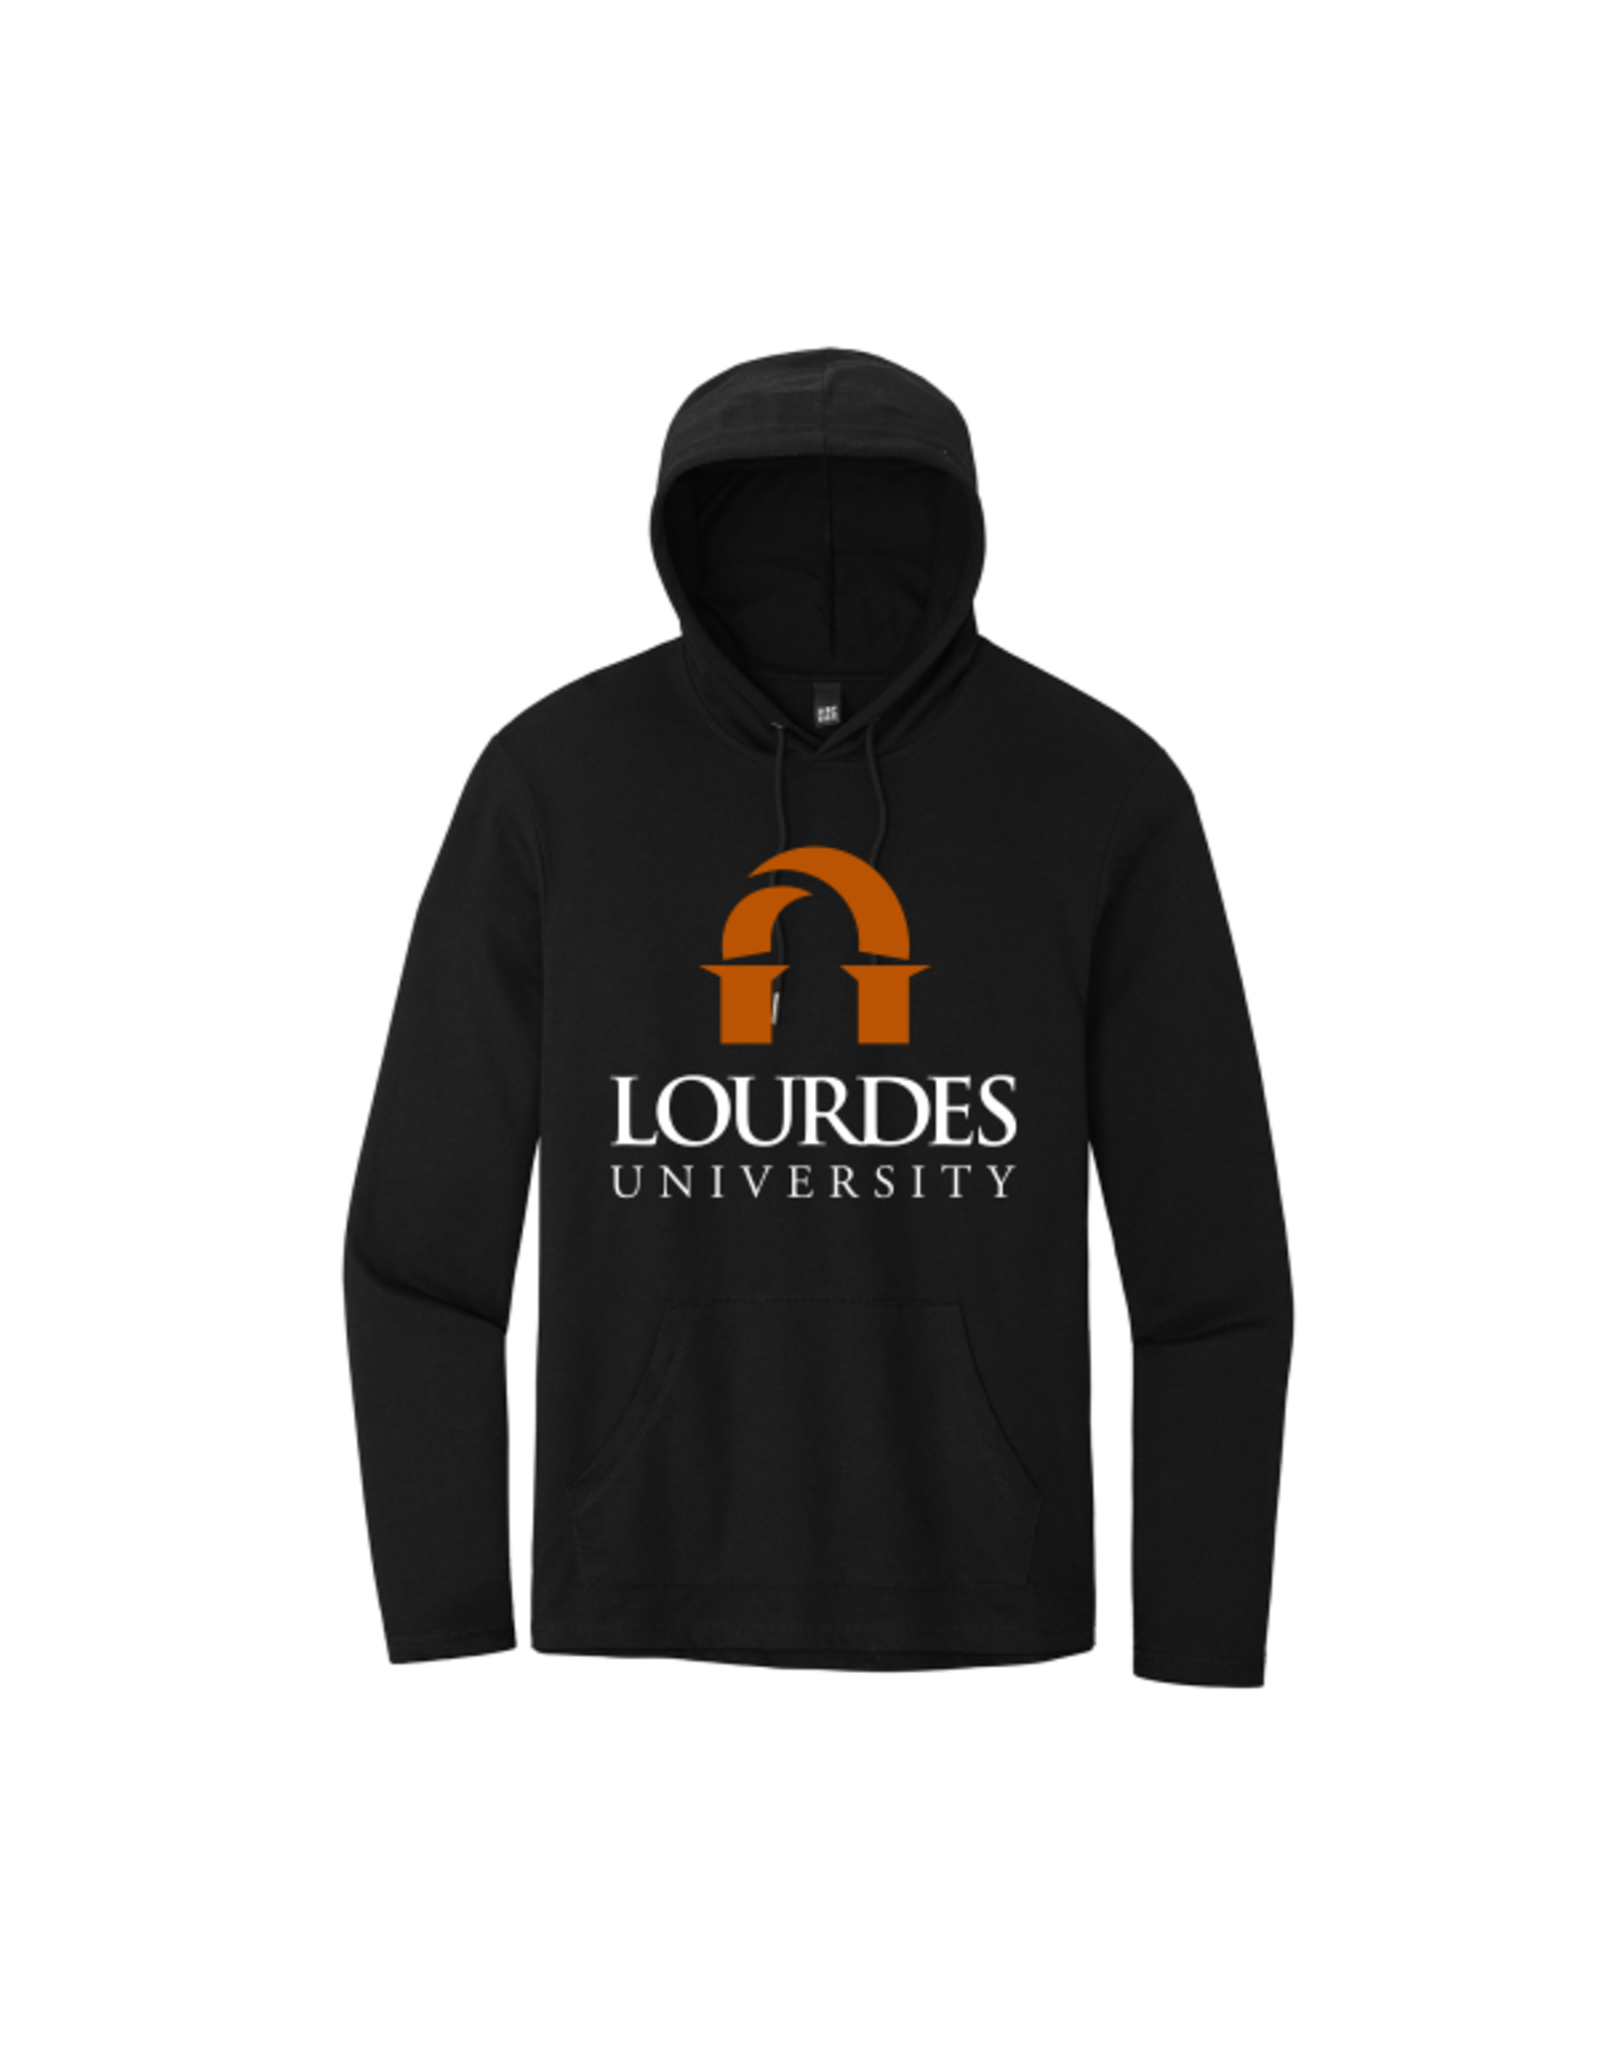 District District®Featherweight French Terry™Hoodie | Lourdes Univ. - Black